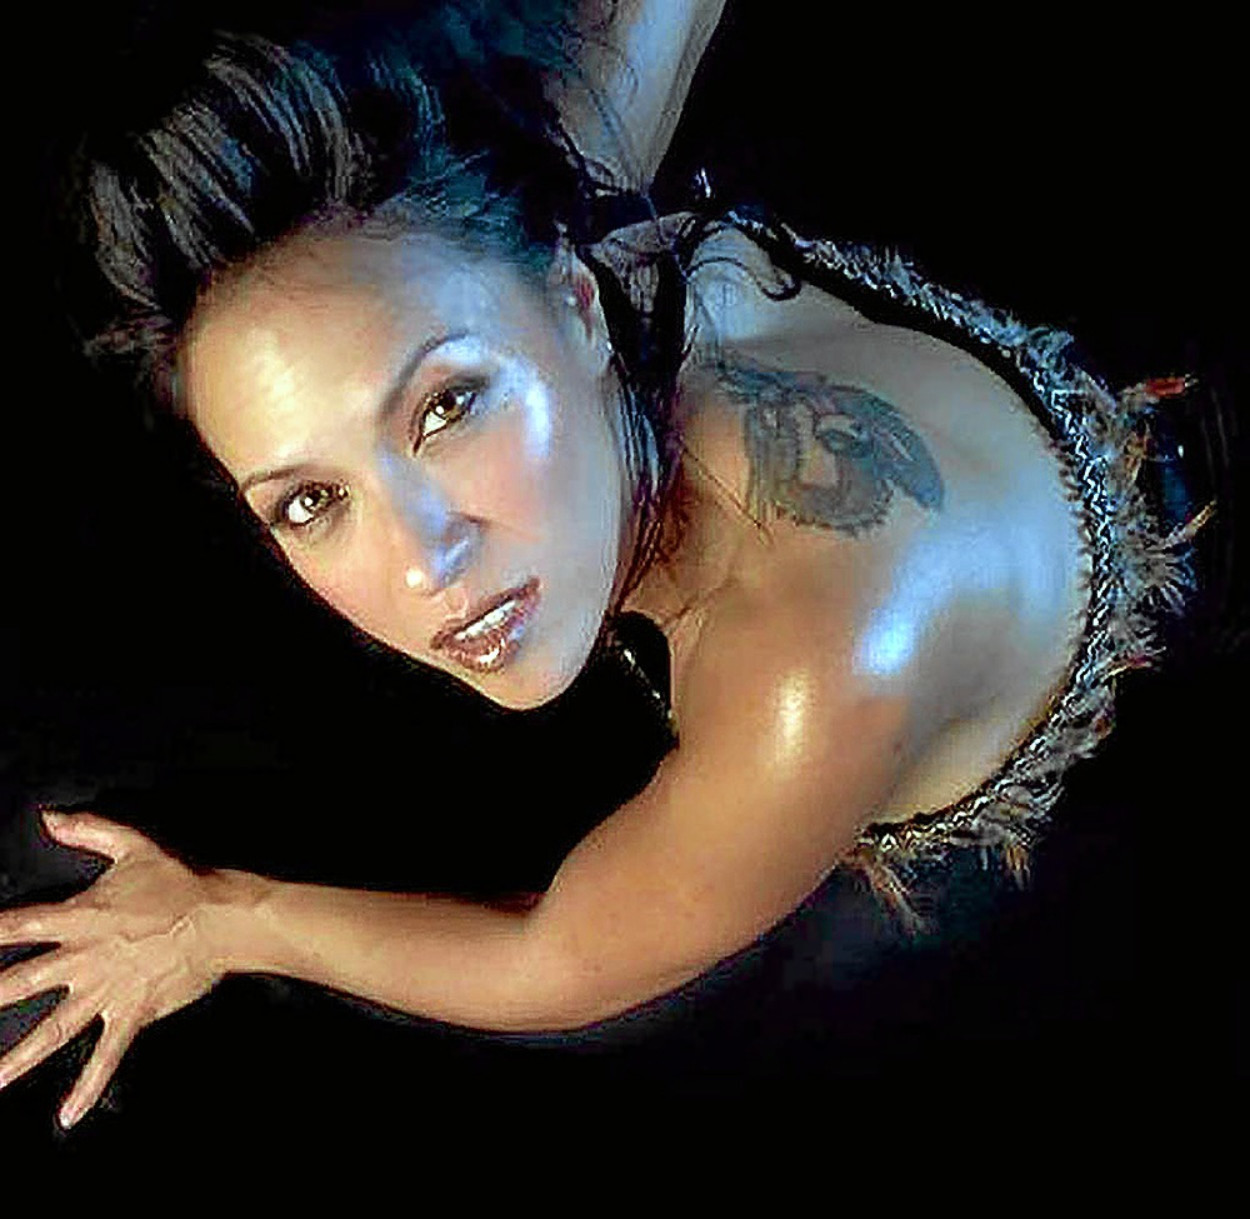 Annabella Lwin of Bow Wow Wow